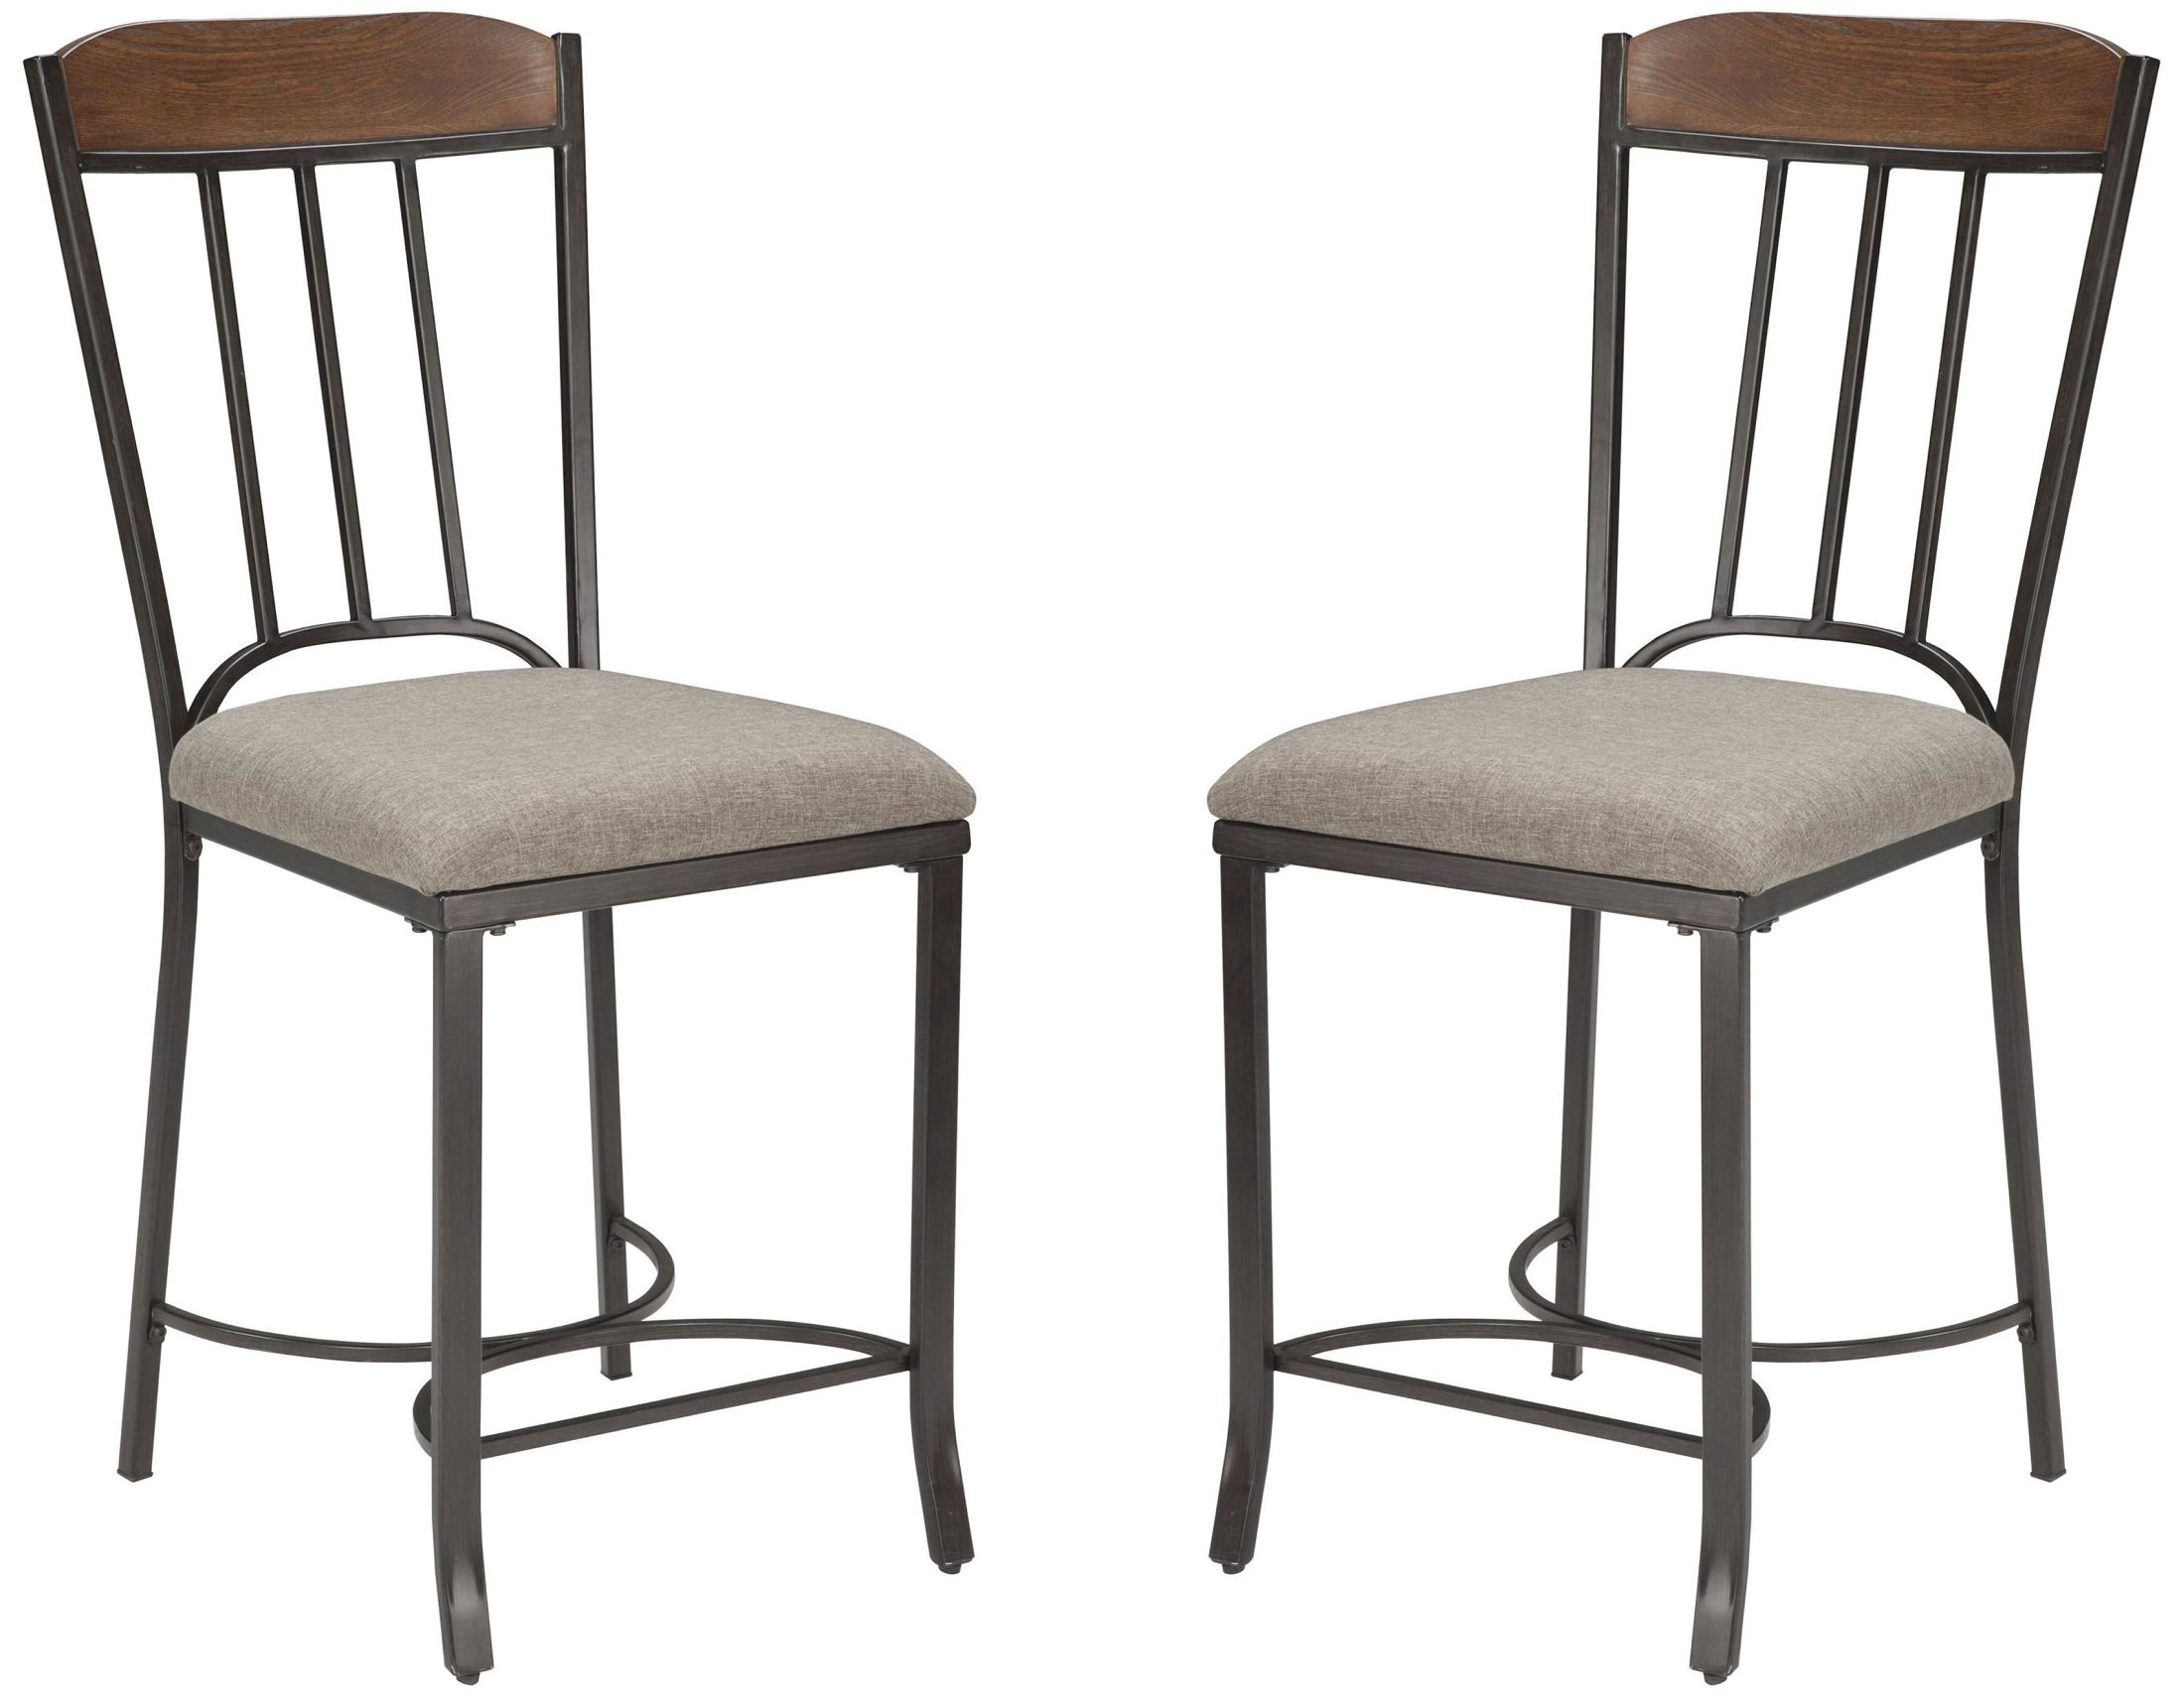 Zanilly Two Tone Upholstered Barstool Set Of 2 From Ashley